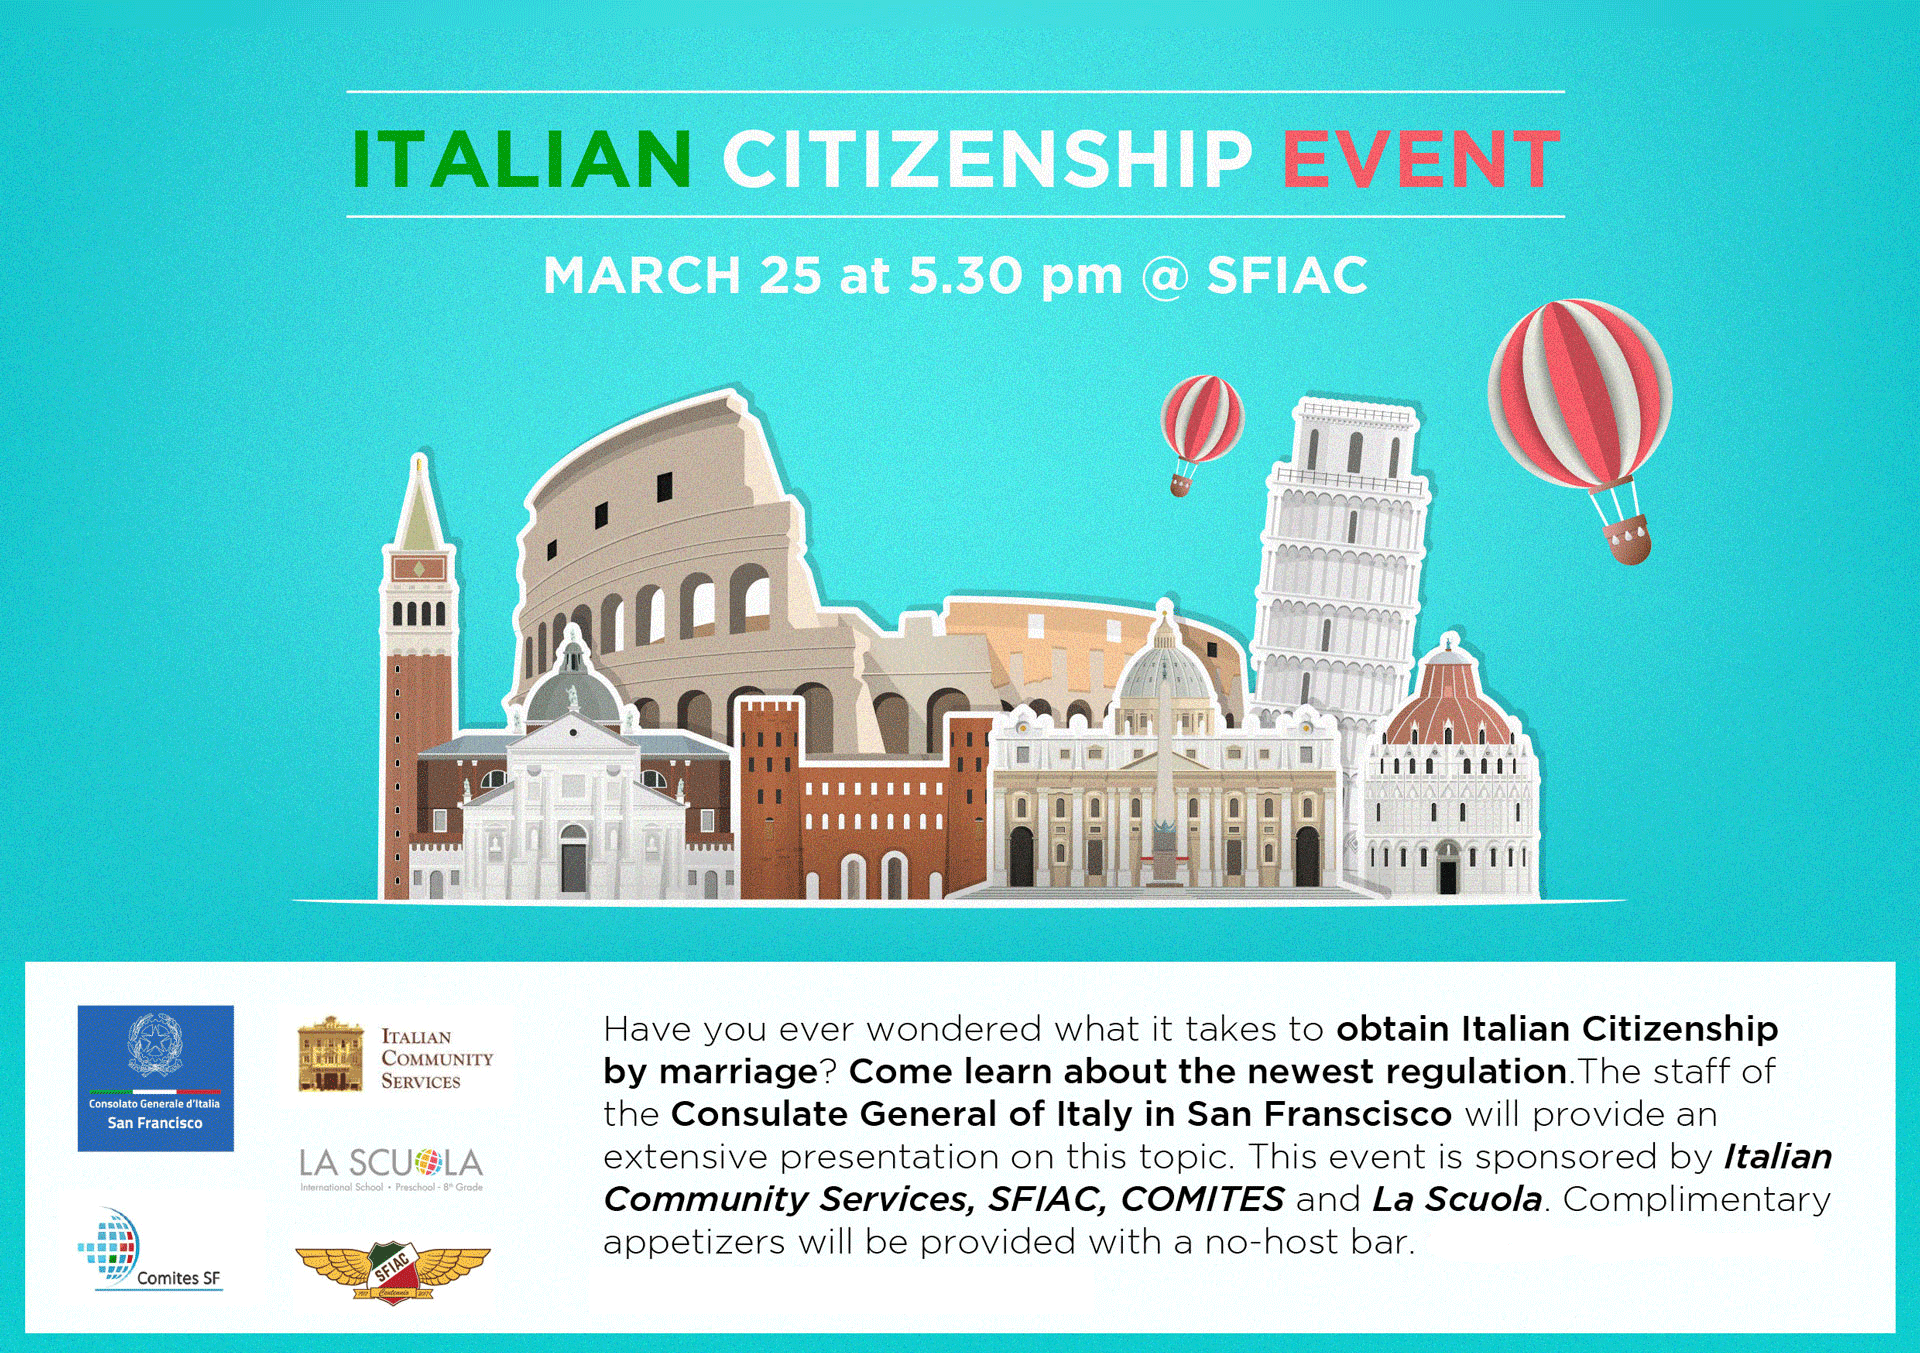 Newest regulation about the Italian Citizenship